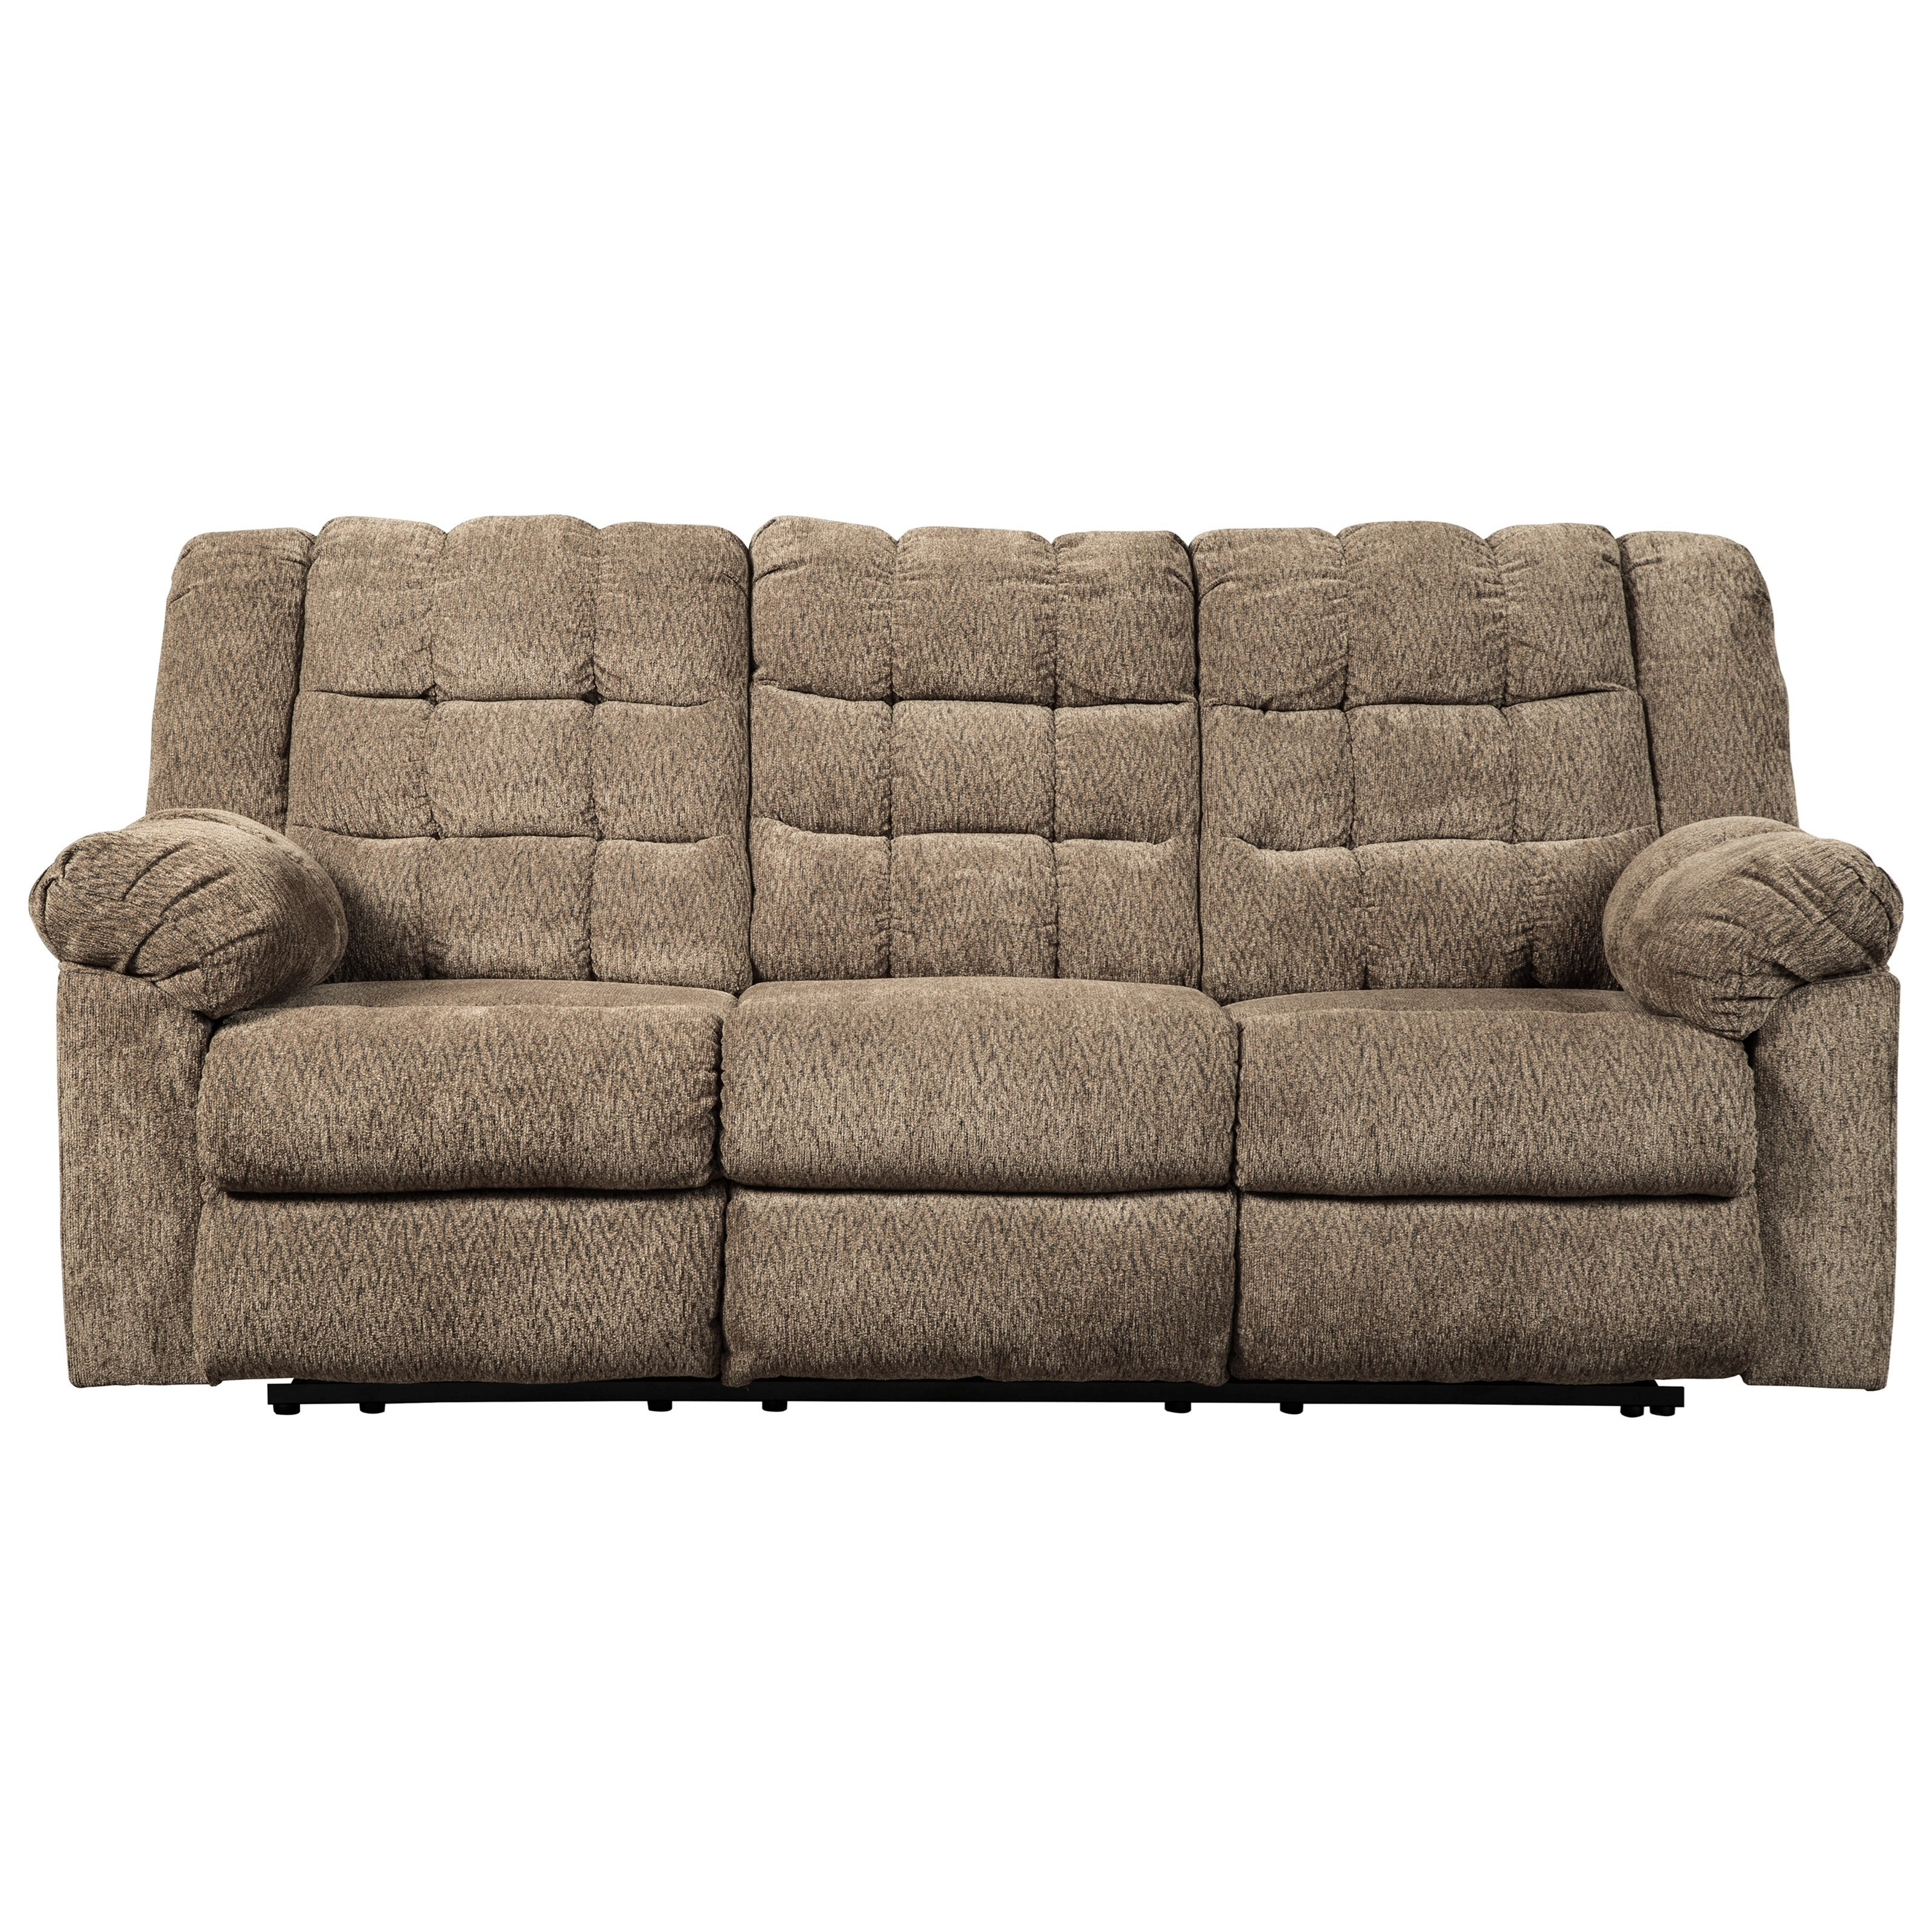 Signature Design by Ashley Workhorse Casual Reclining Sofa